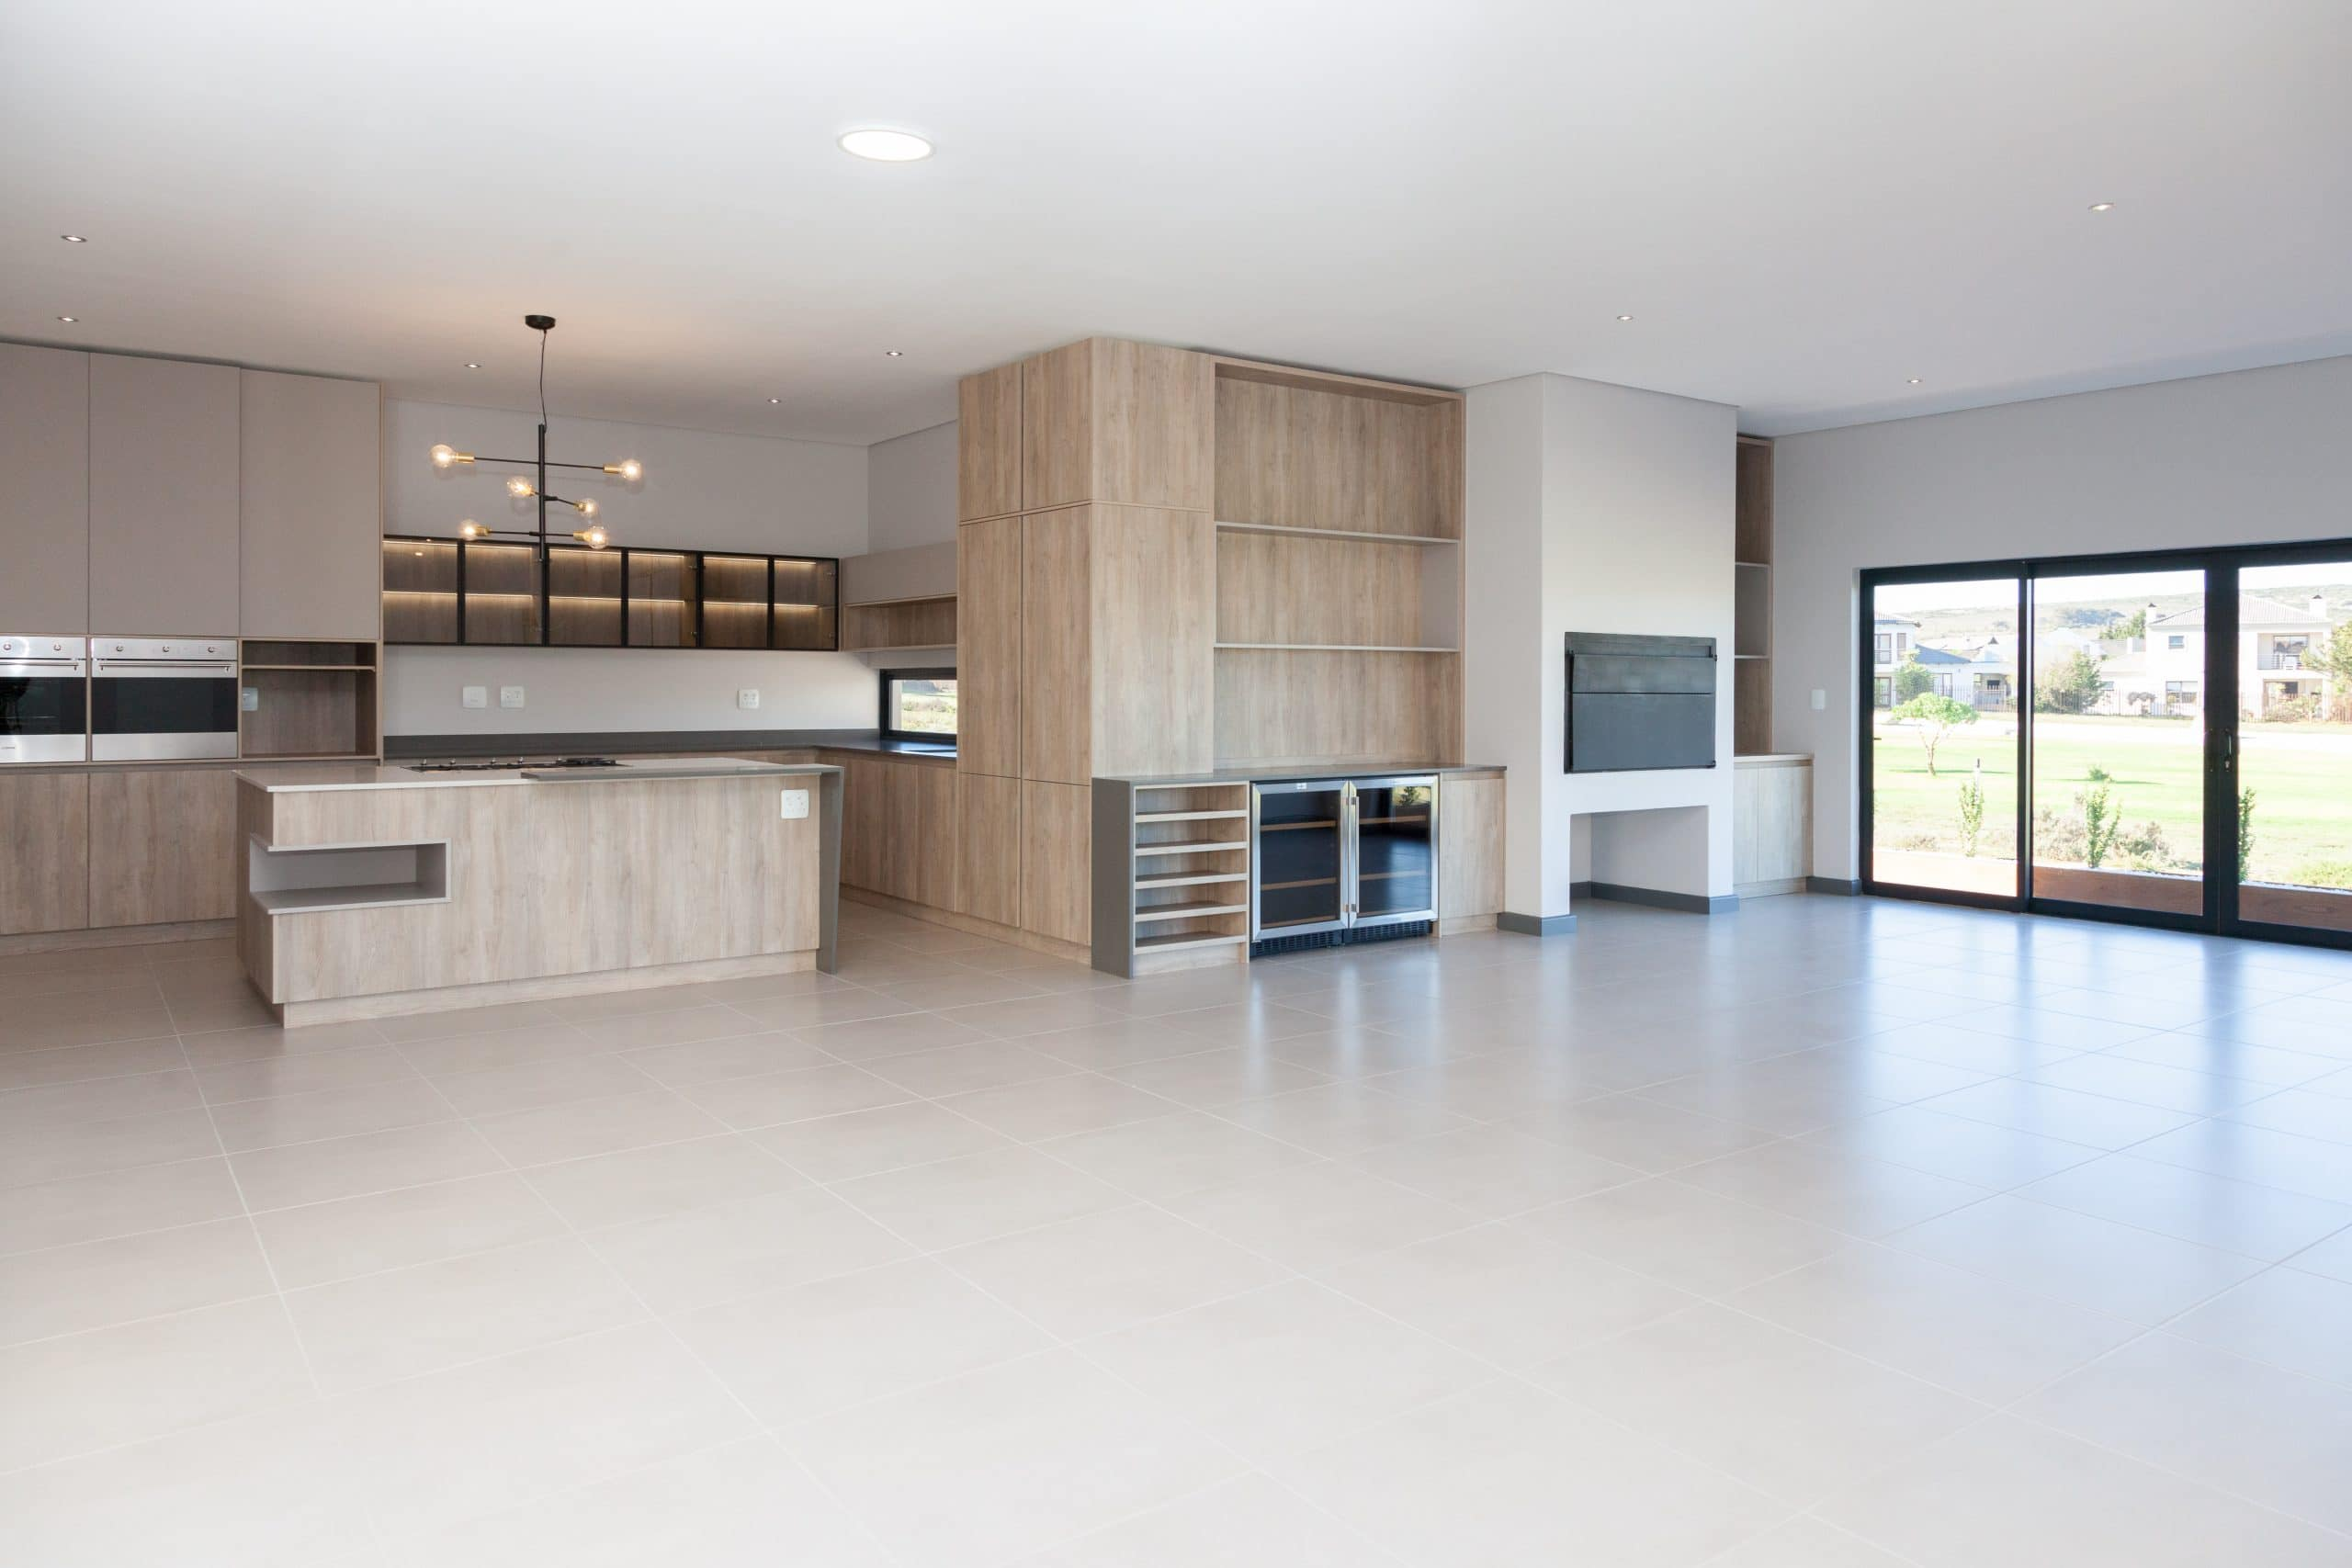 snowmaster built in bar fridge modern kitchen built in braai overlooking langebaan golf course